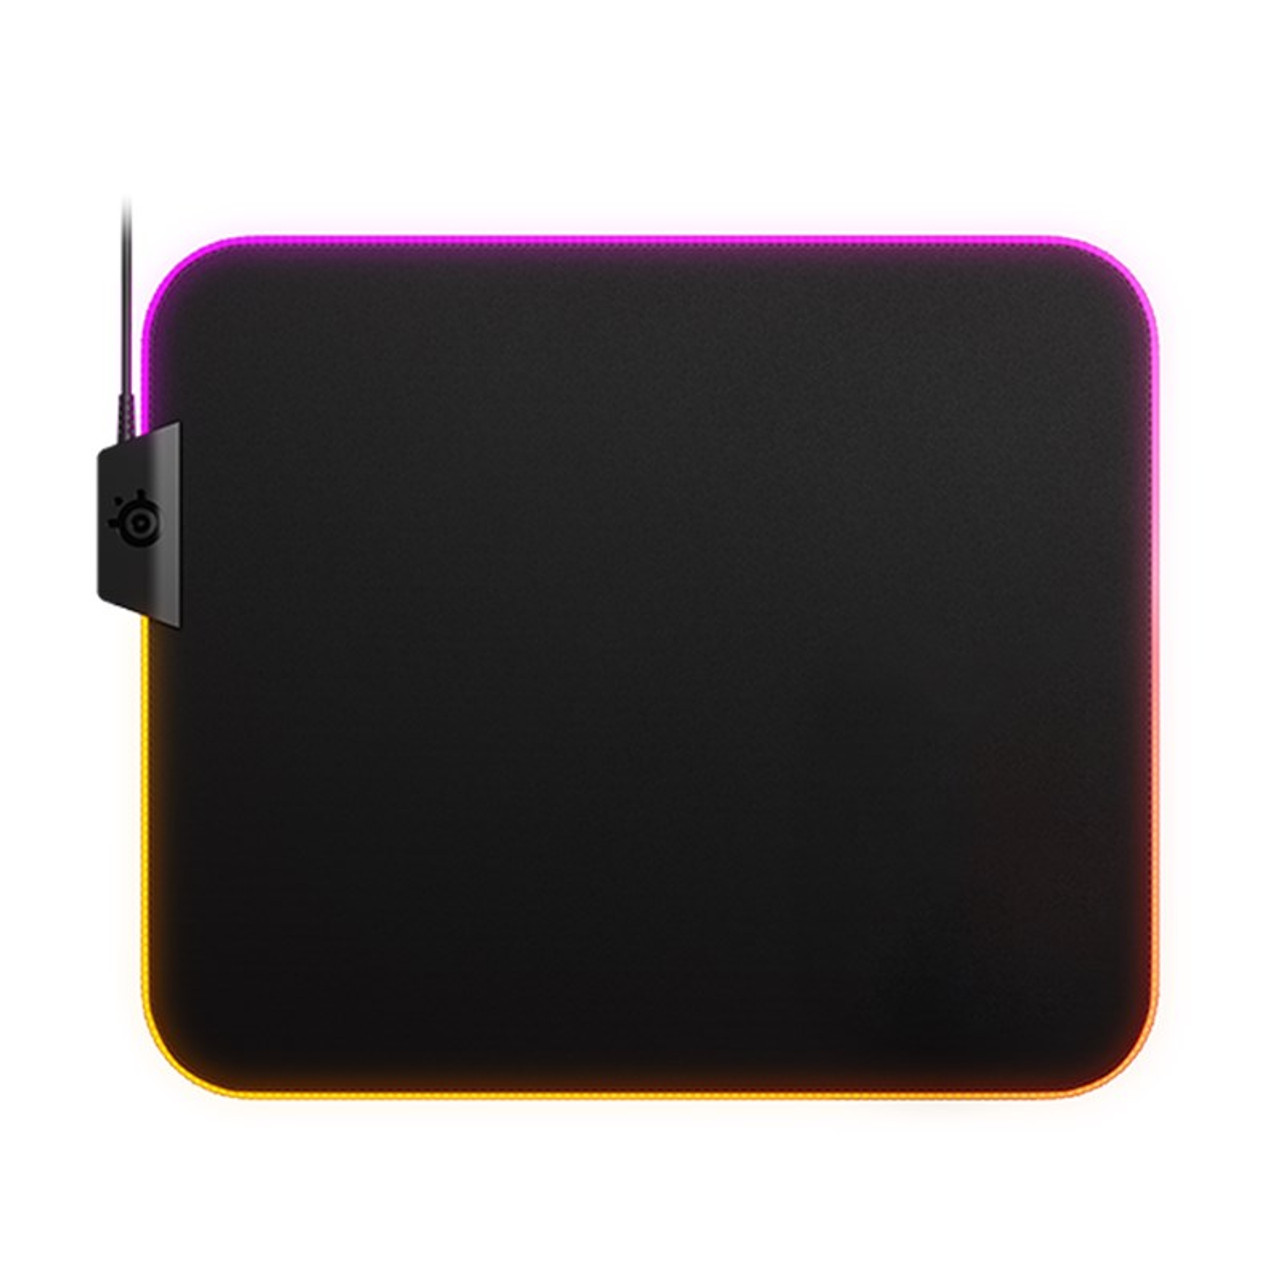 Image for SteelSeries QcK Prism Cloth RGB Gaming Mouse Pad - Medium CX Computer Superstore